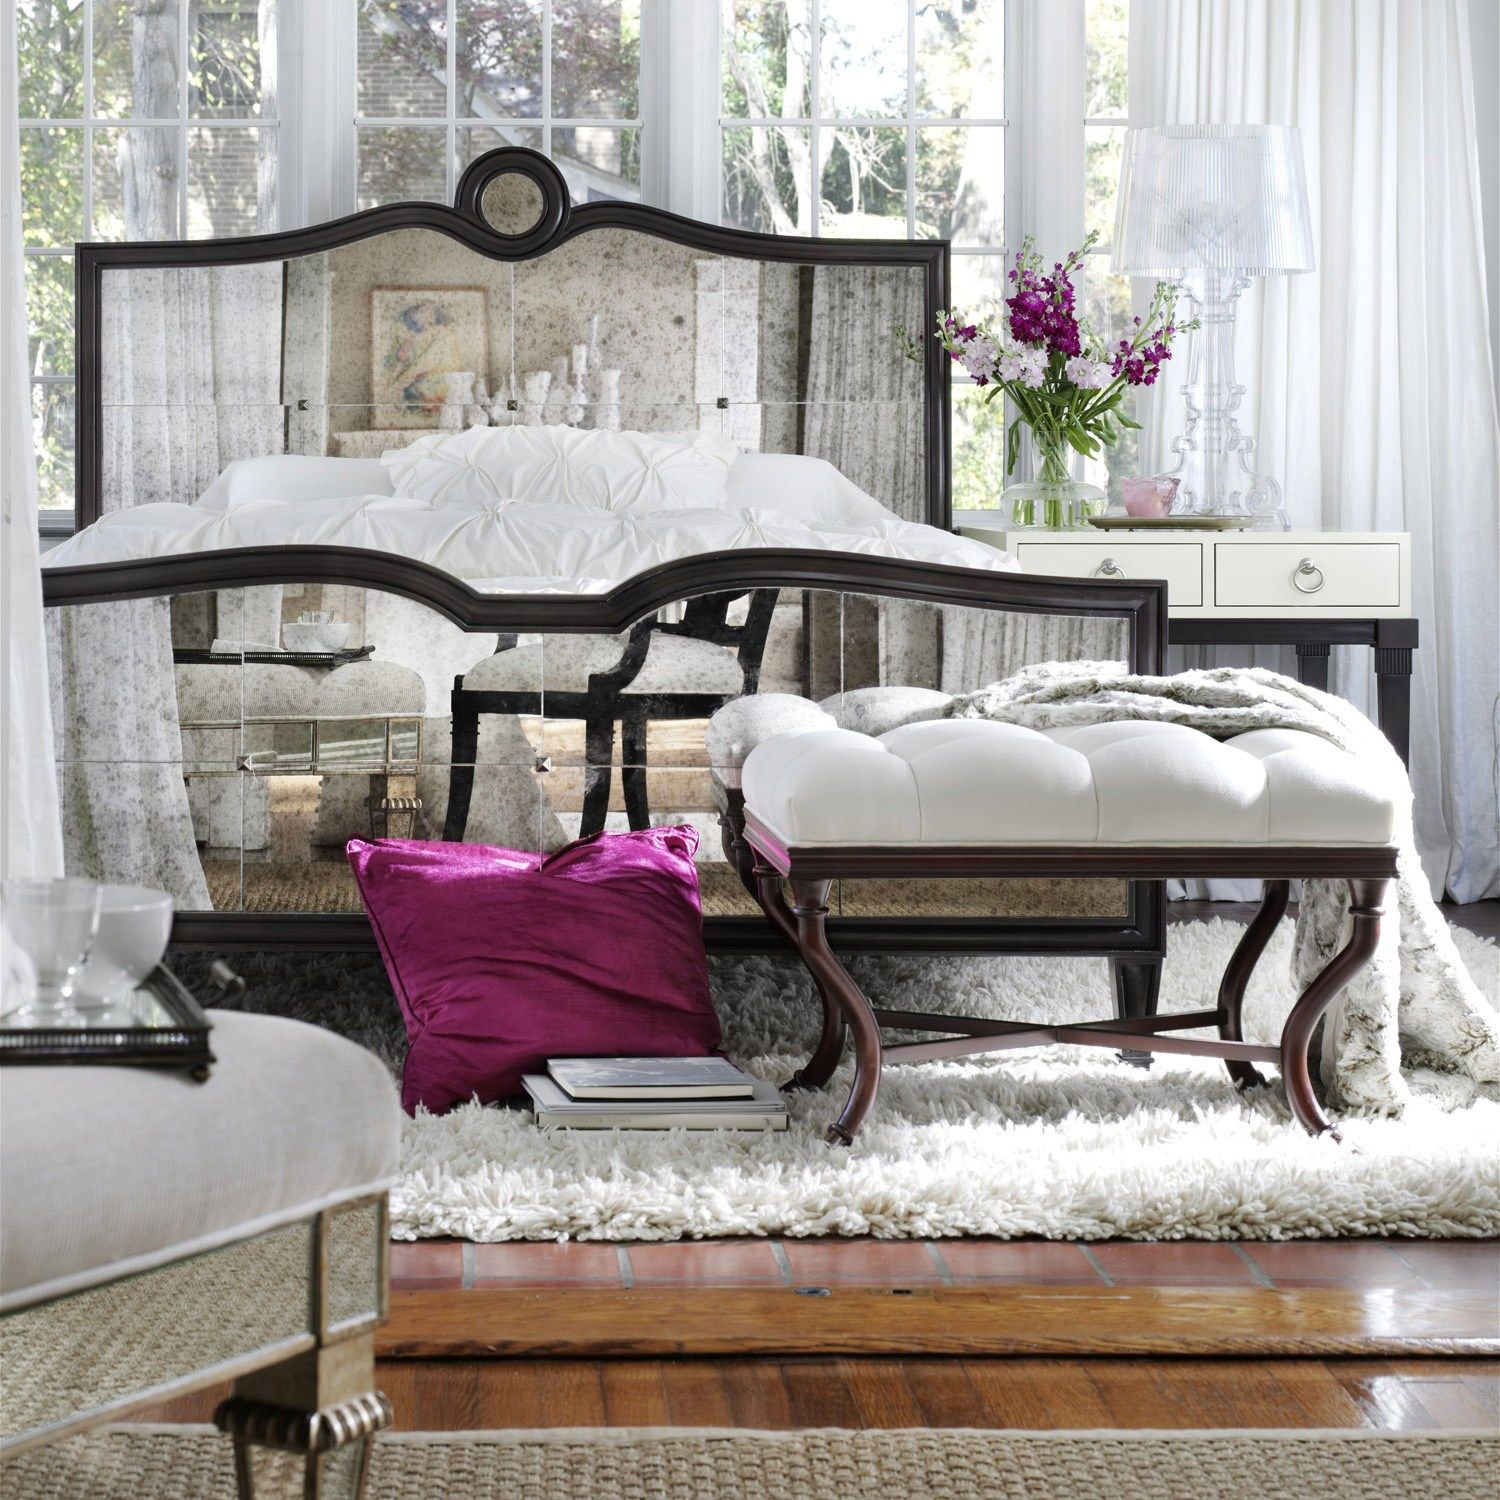 """""""I NEEEEED This BED!!"""" -Rachael Belle Meade Grayson"""